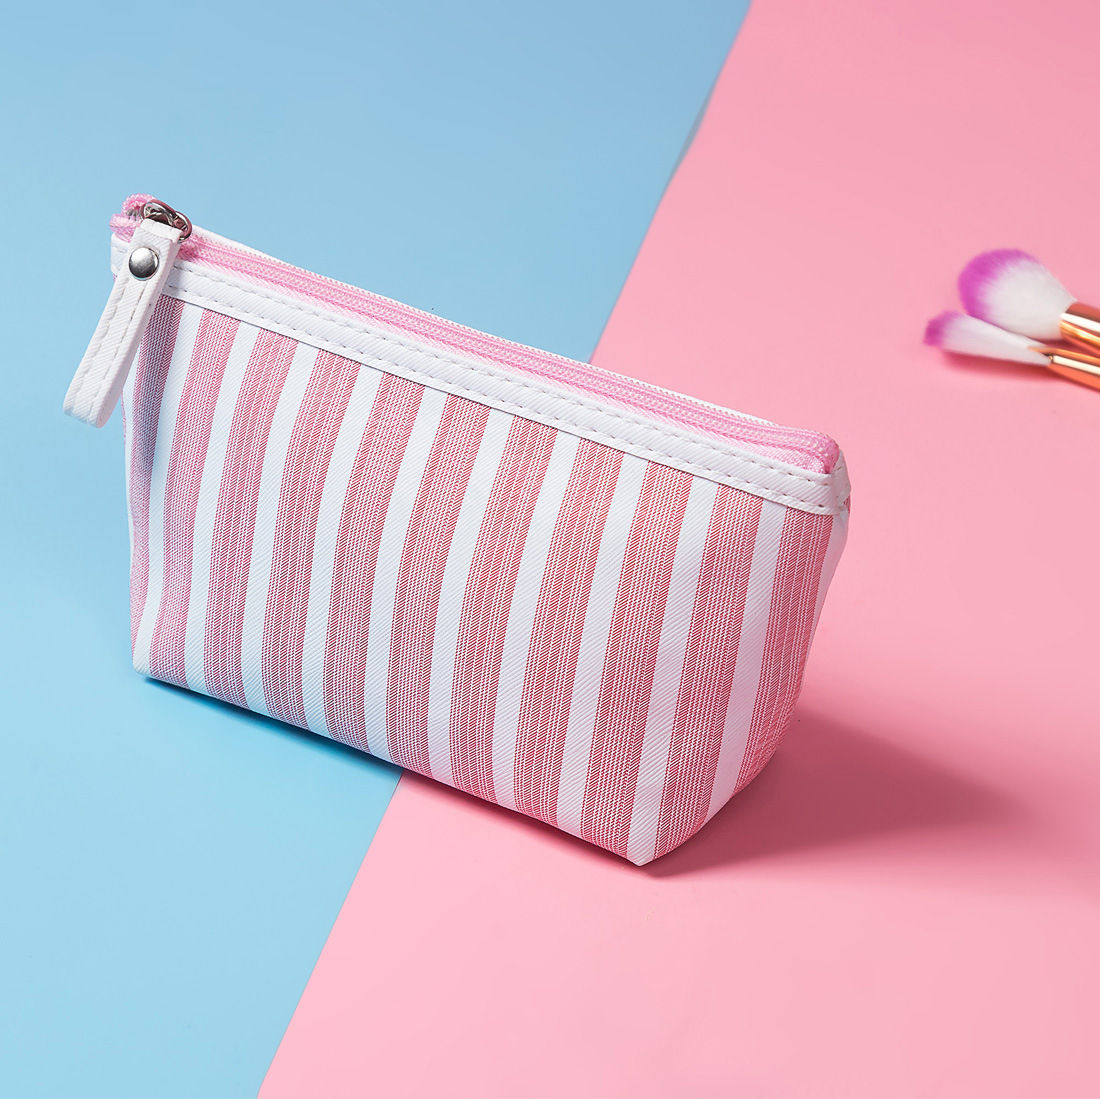 2019 New Striped Women Cosmetic Bag Pillow Multifunction Travel Make Up Bags Girls Zipper Makeup Case Pouch Pencil Case